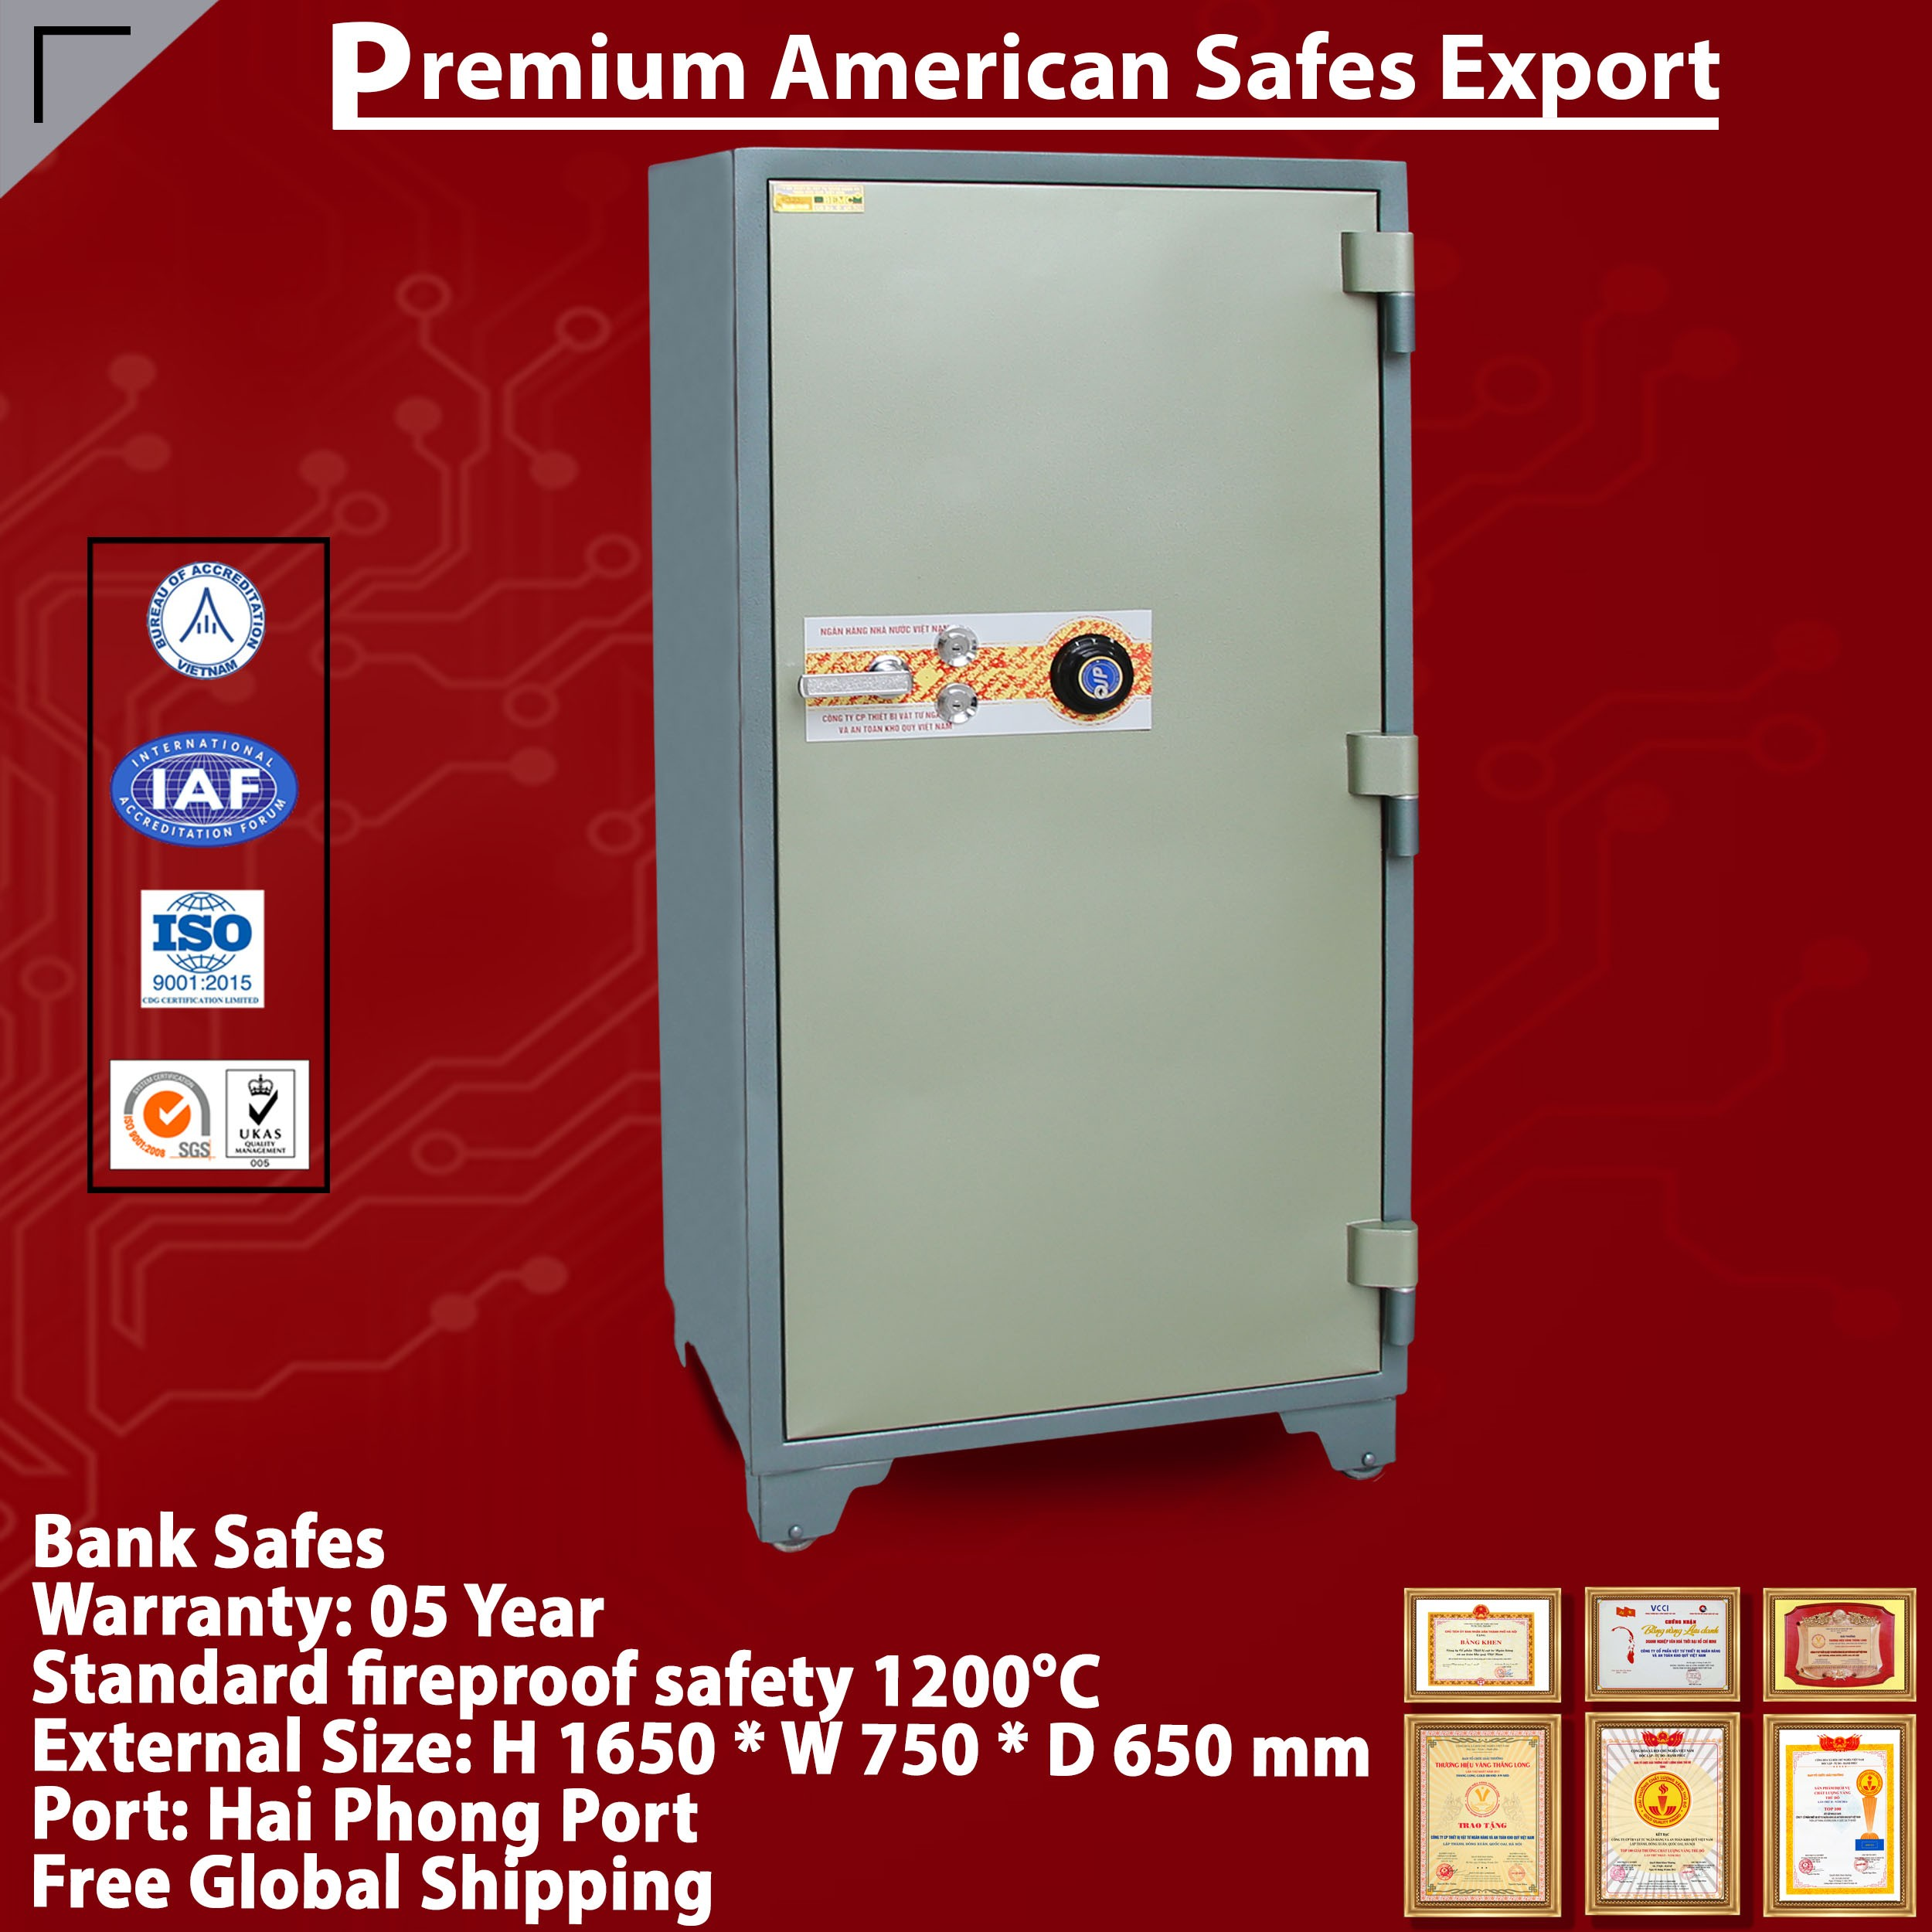 Bank Safes LX1650 DK The Best Bank Safes In the World From BEMC Safe